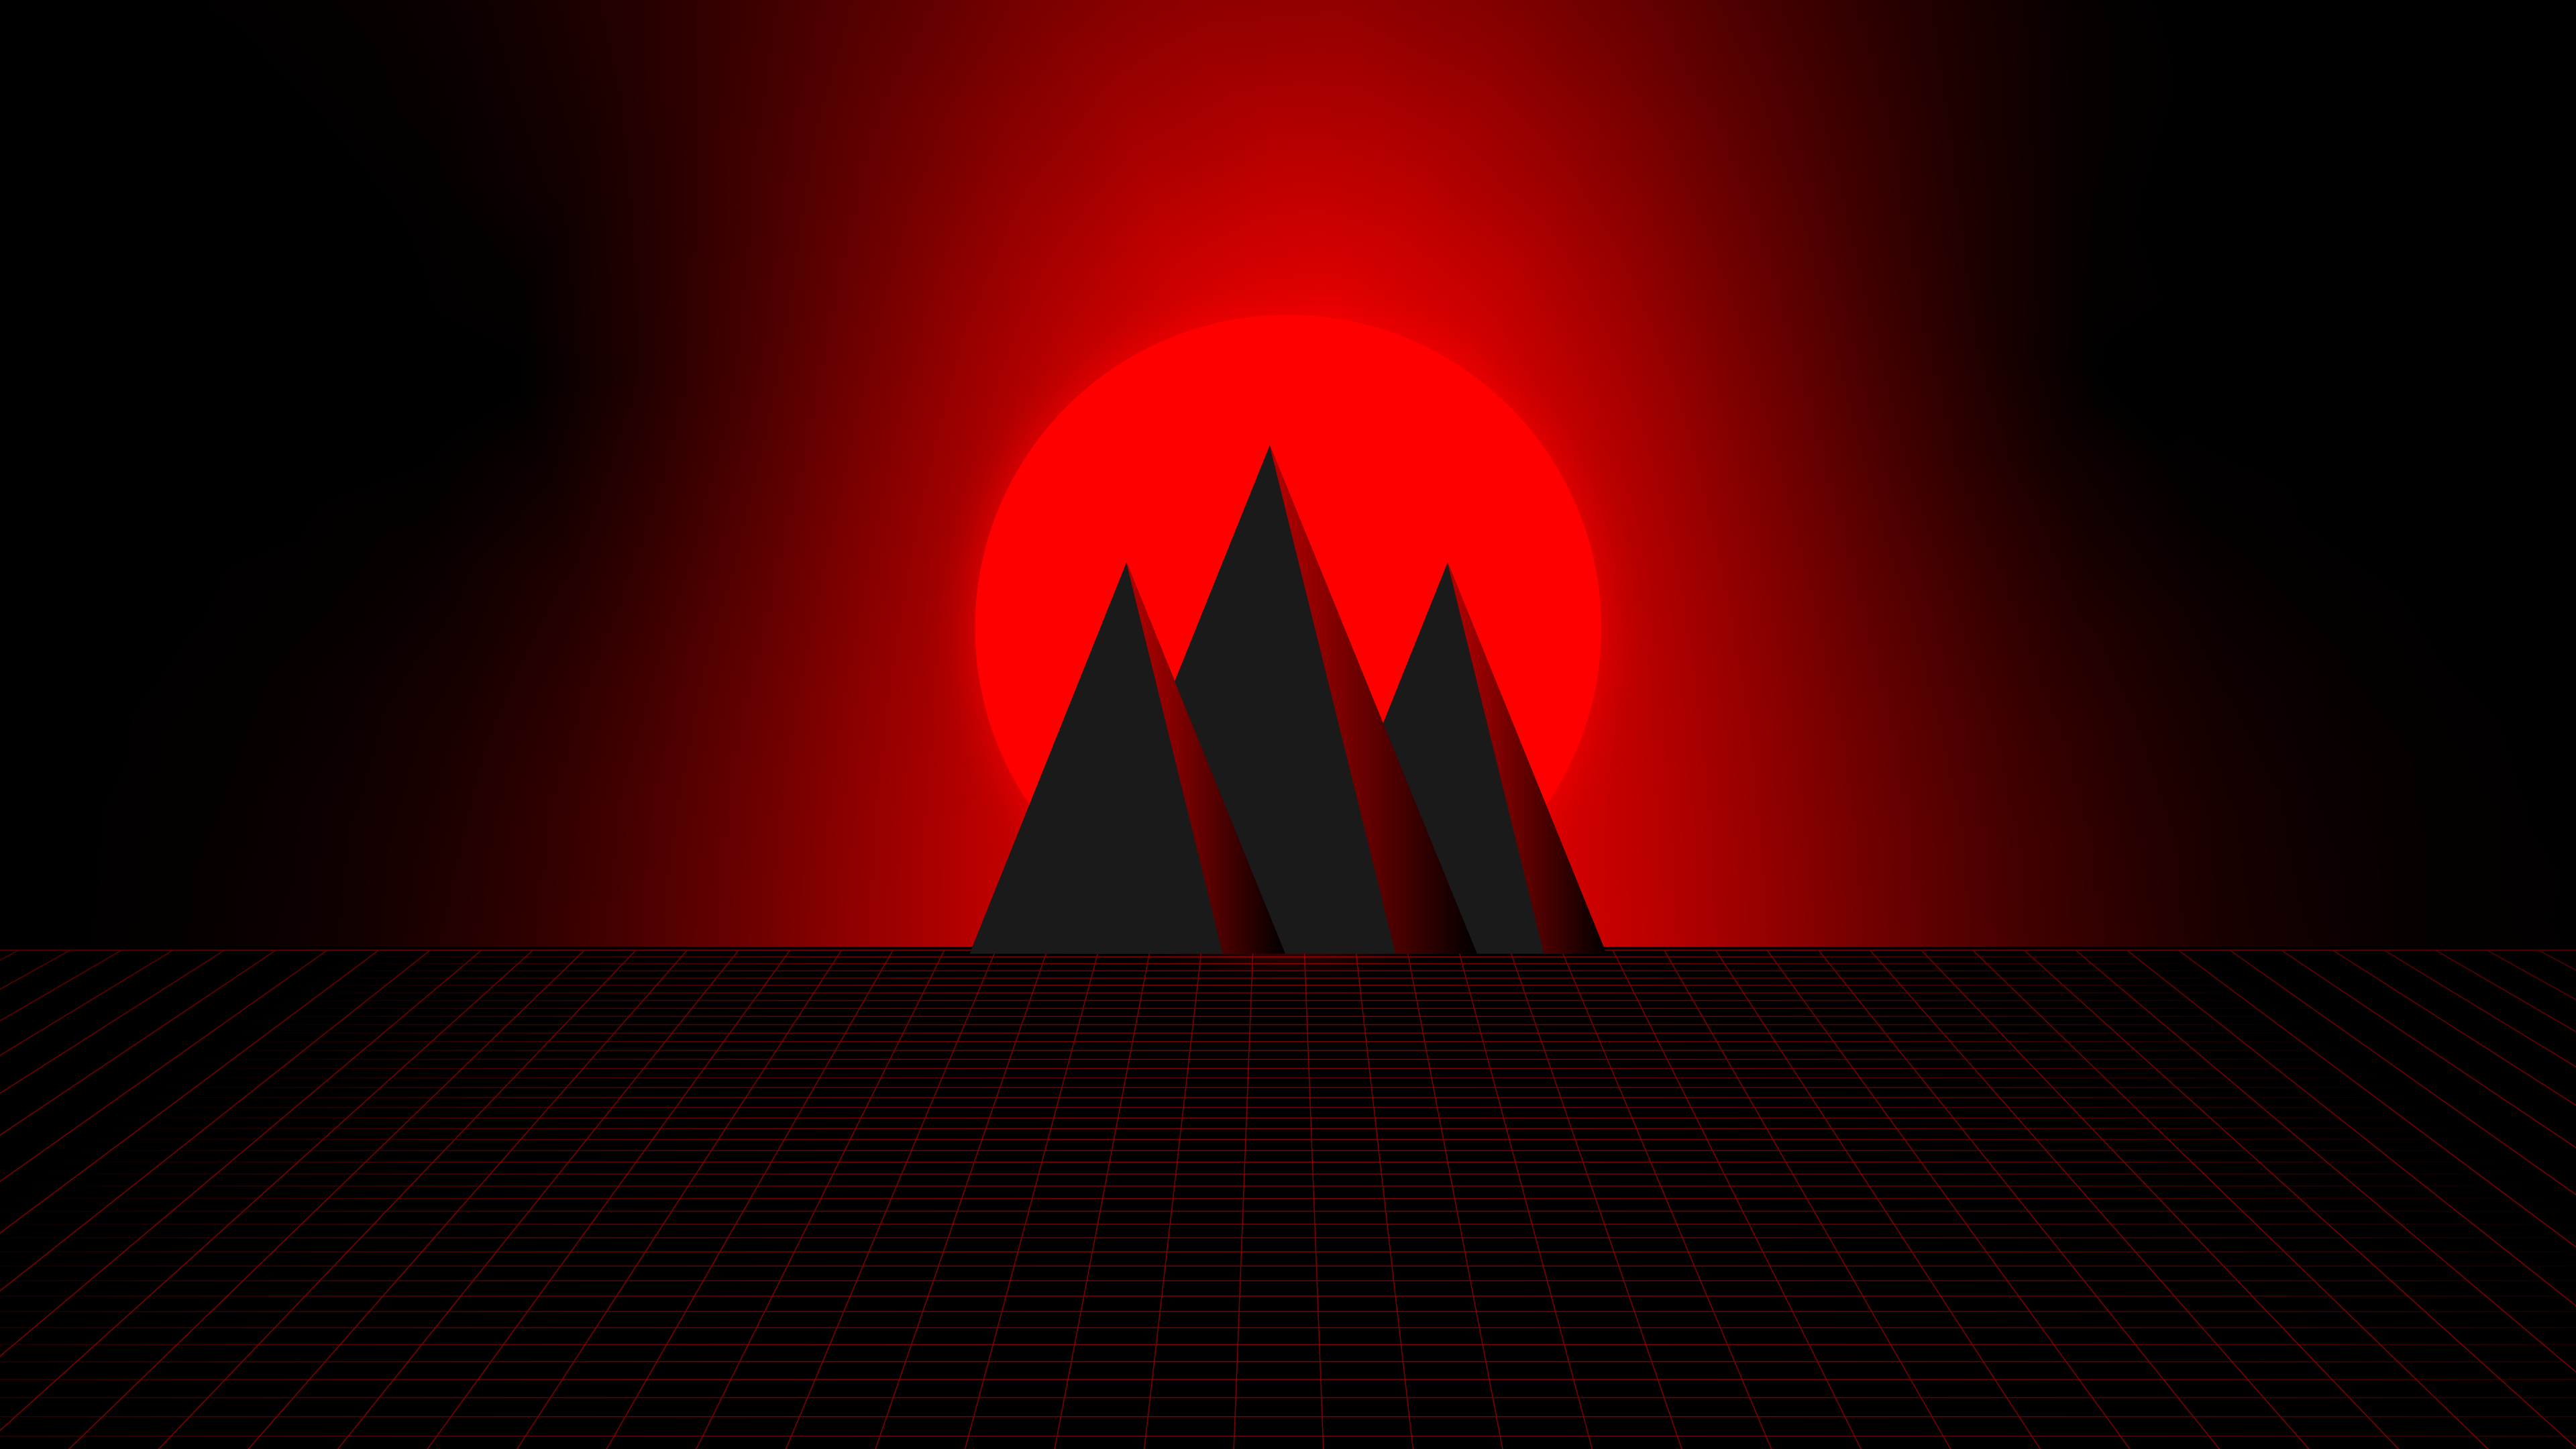 Synthwave red 4k [3840x2160] in 2020   Synthwave ...